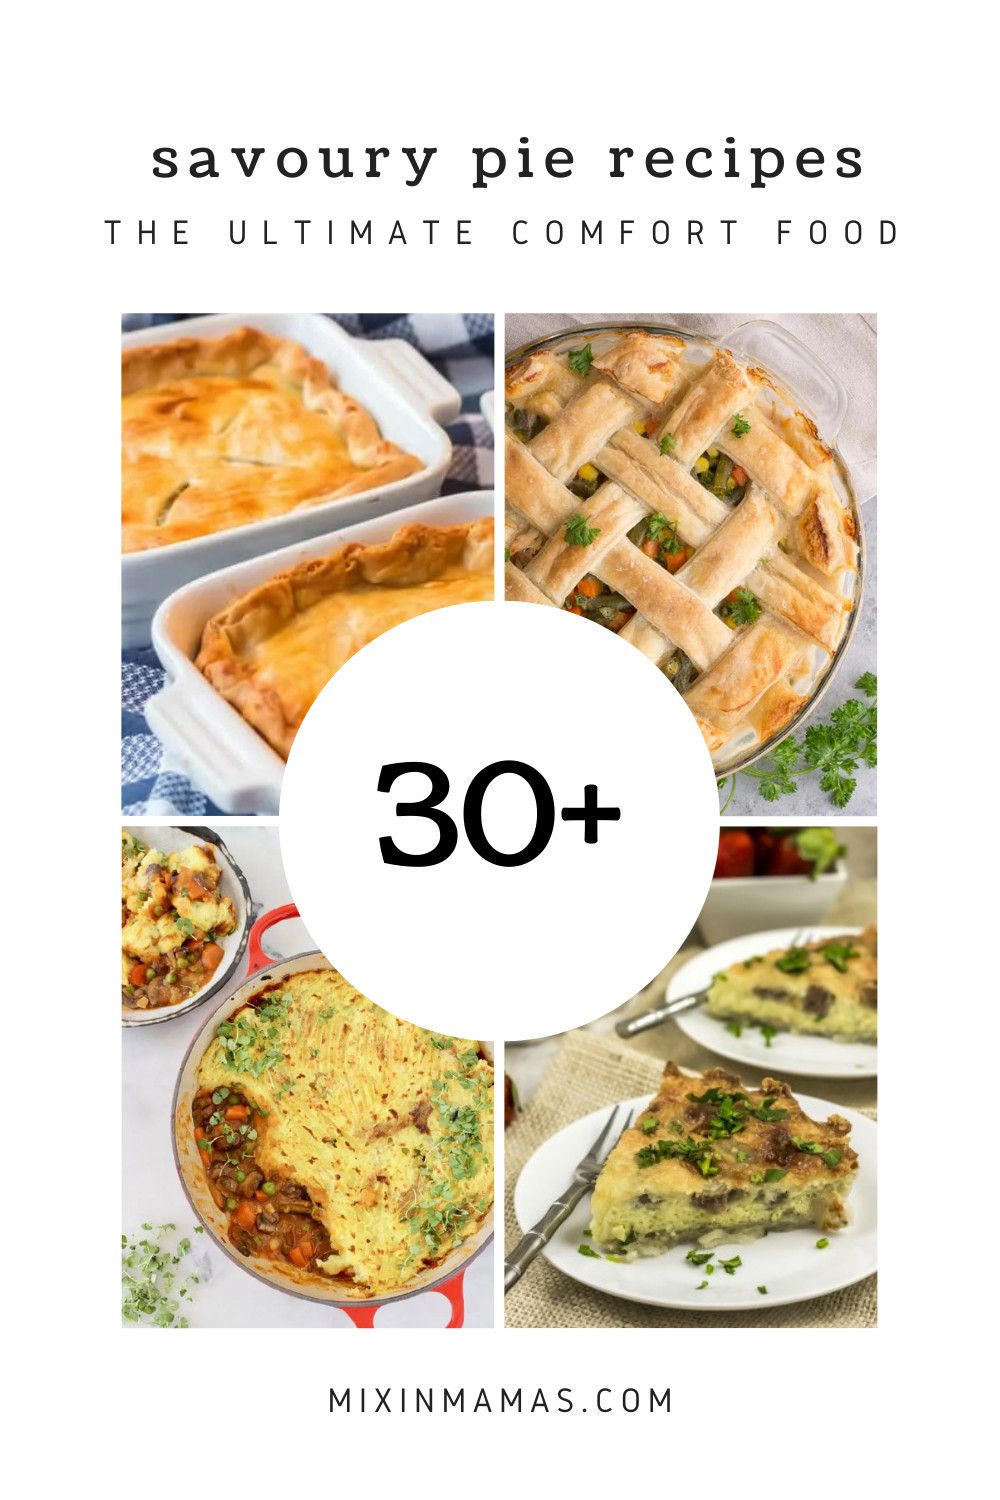 30+ savoury pie recipes - the ultimate comfort food